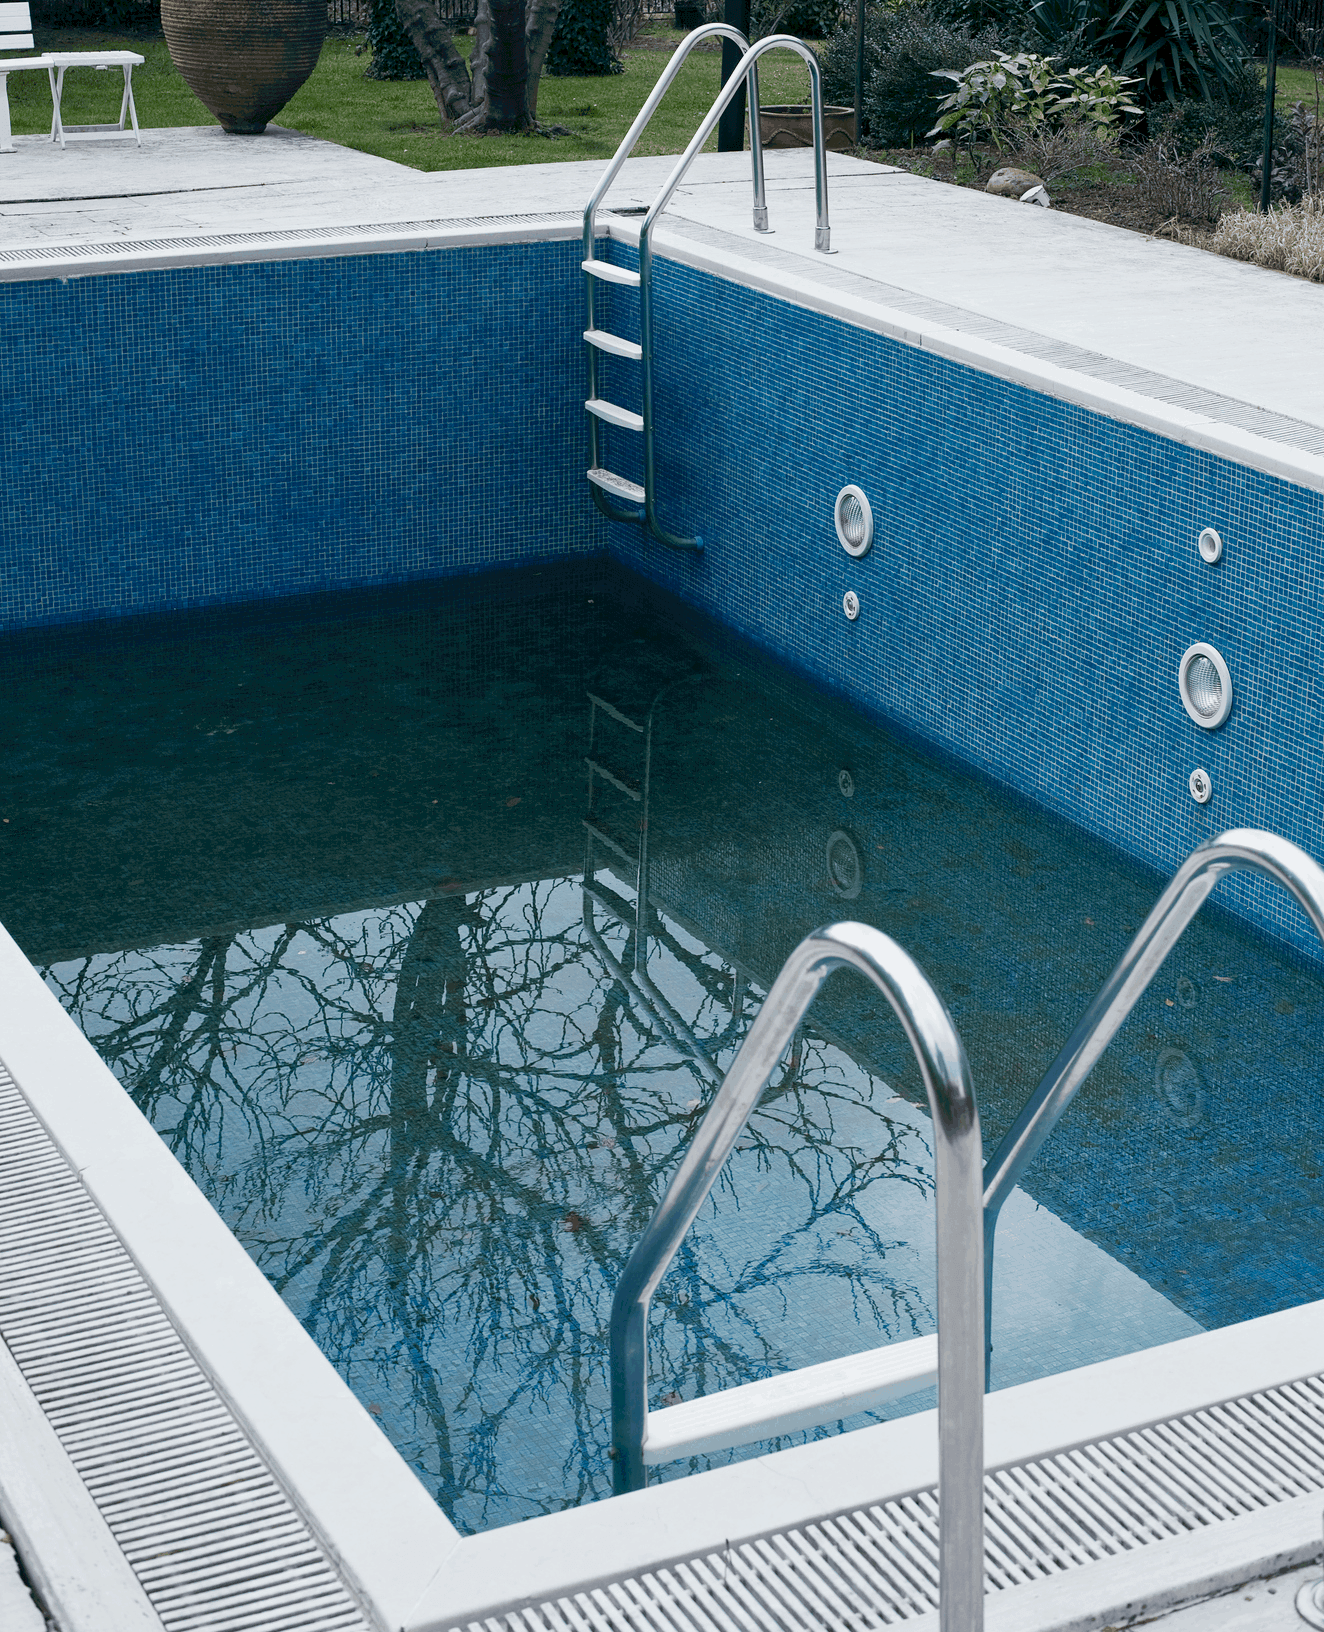 Pool leak detection Windsor